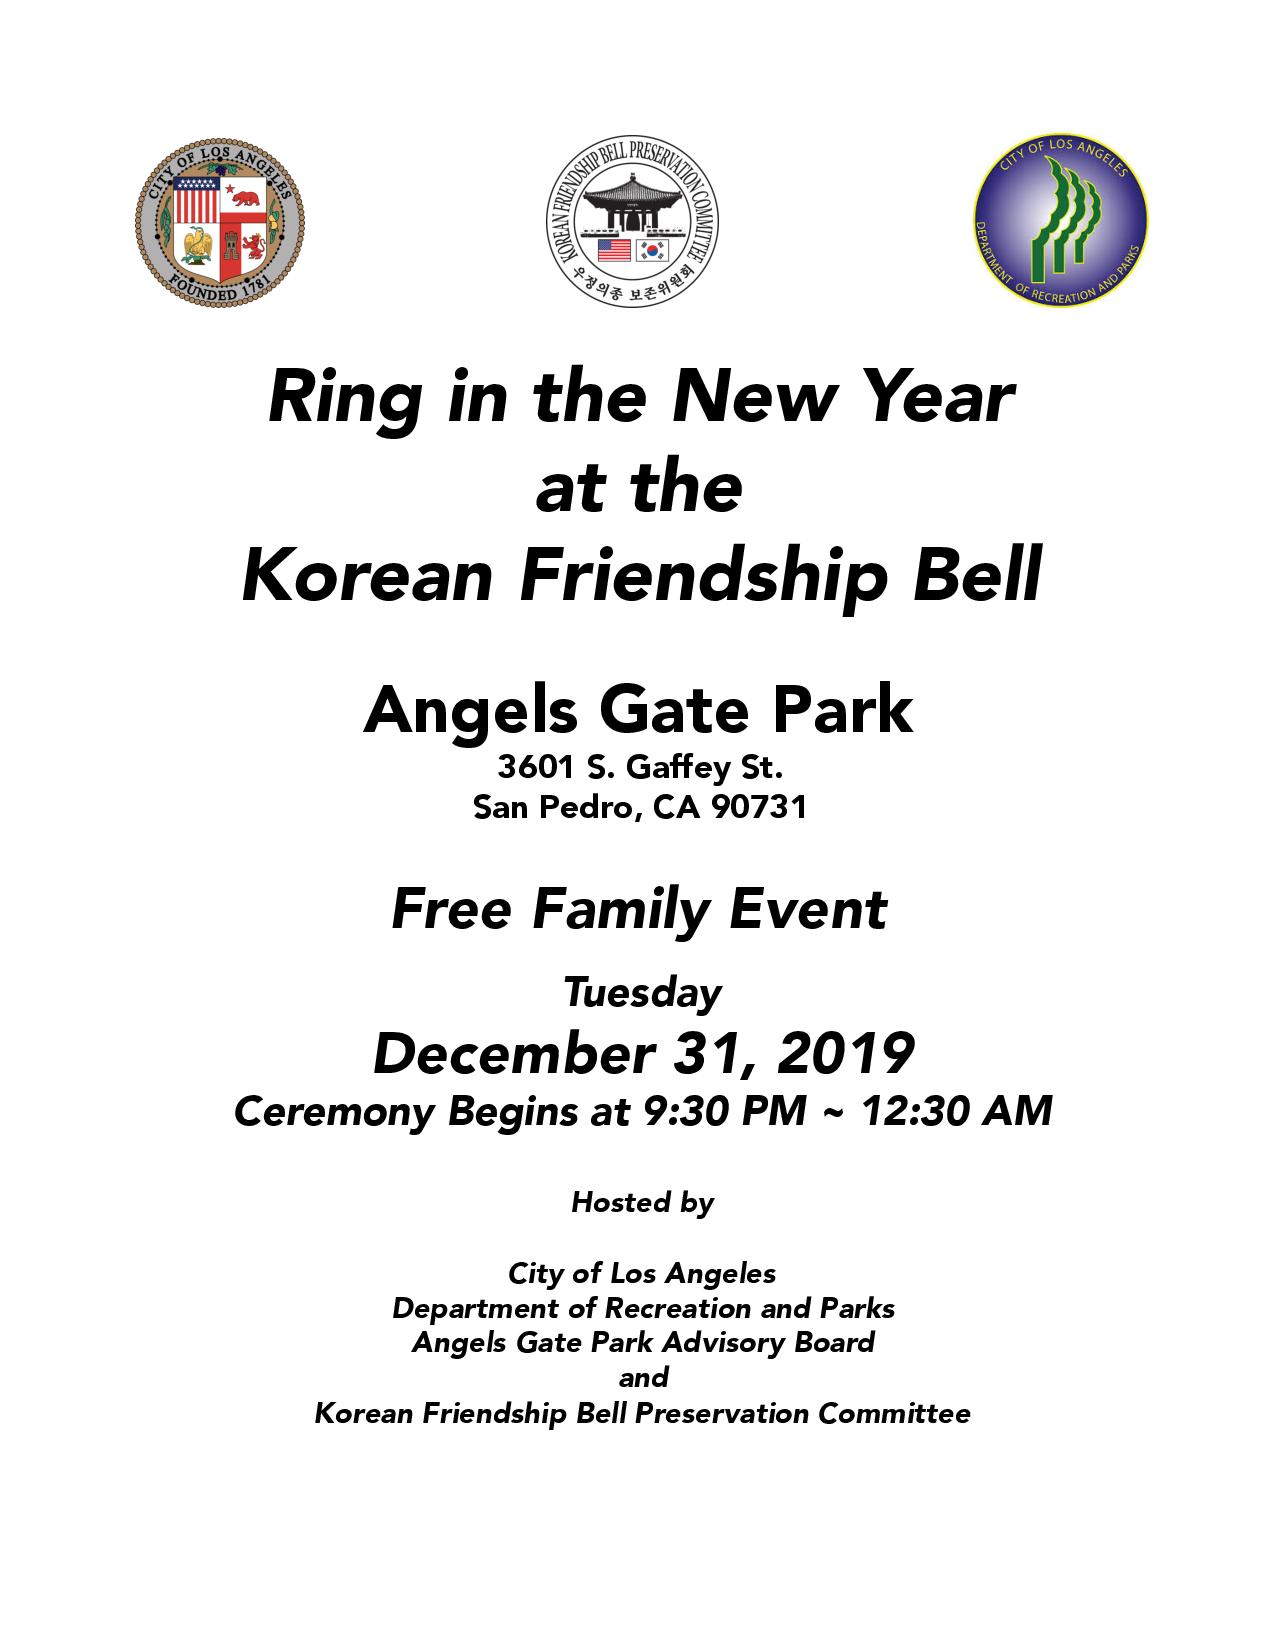 Ring in the New Year at the Korean Friendship Bell